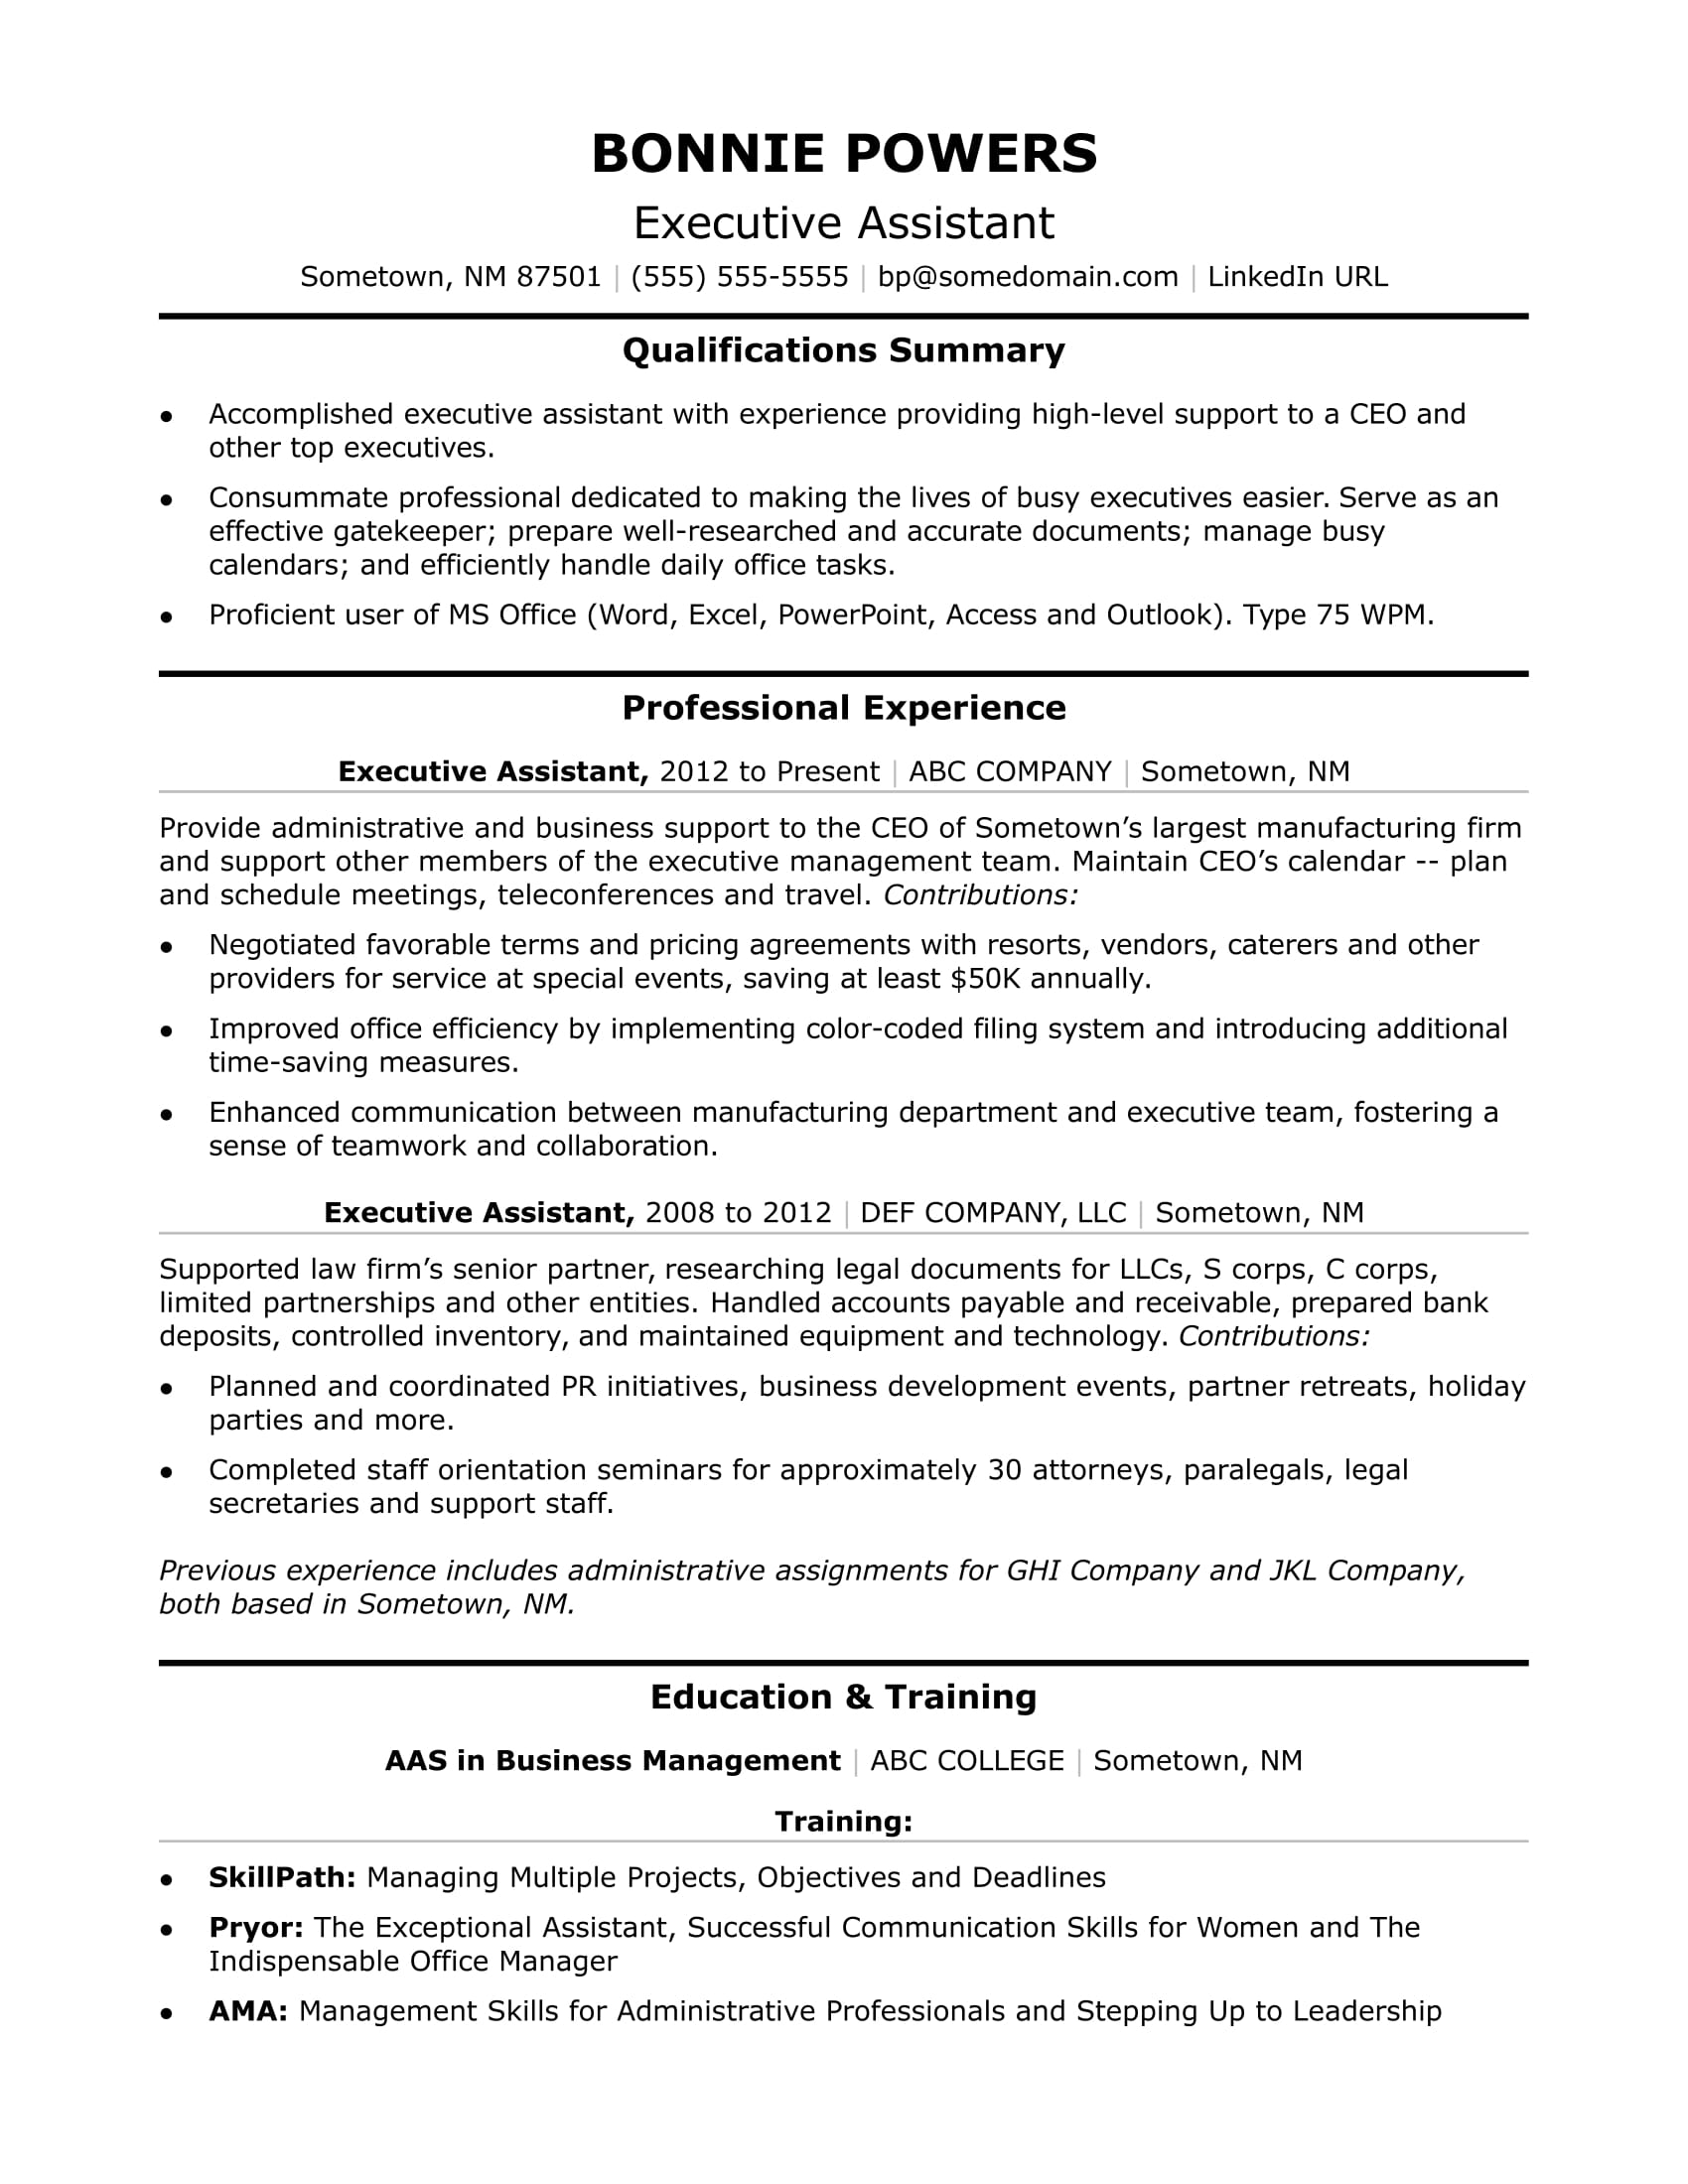 Executive Administrative Assistant Resume Sample  Administrative Assistant Resume Samples